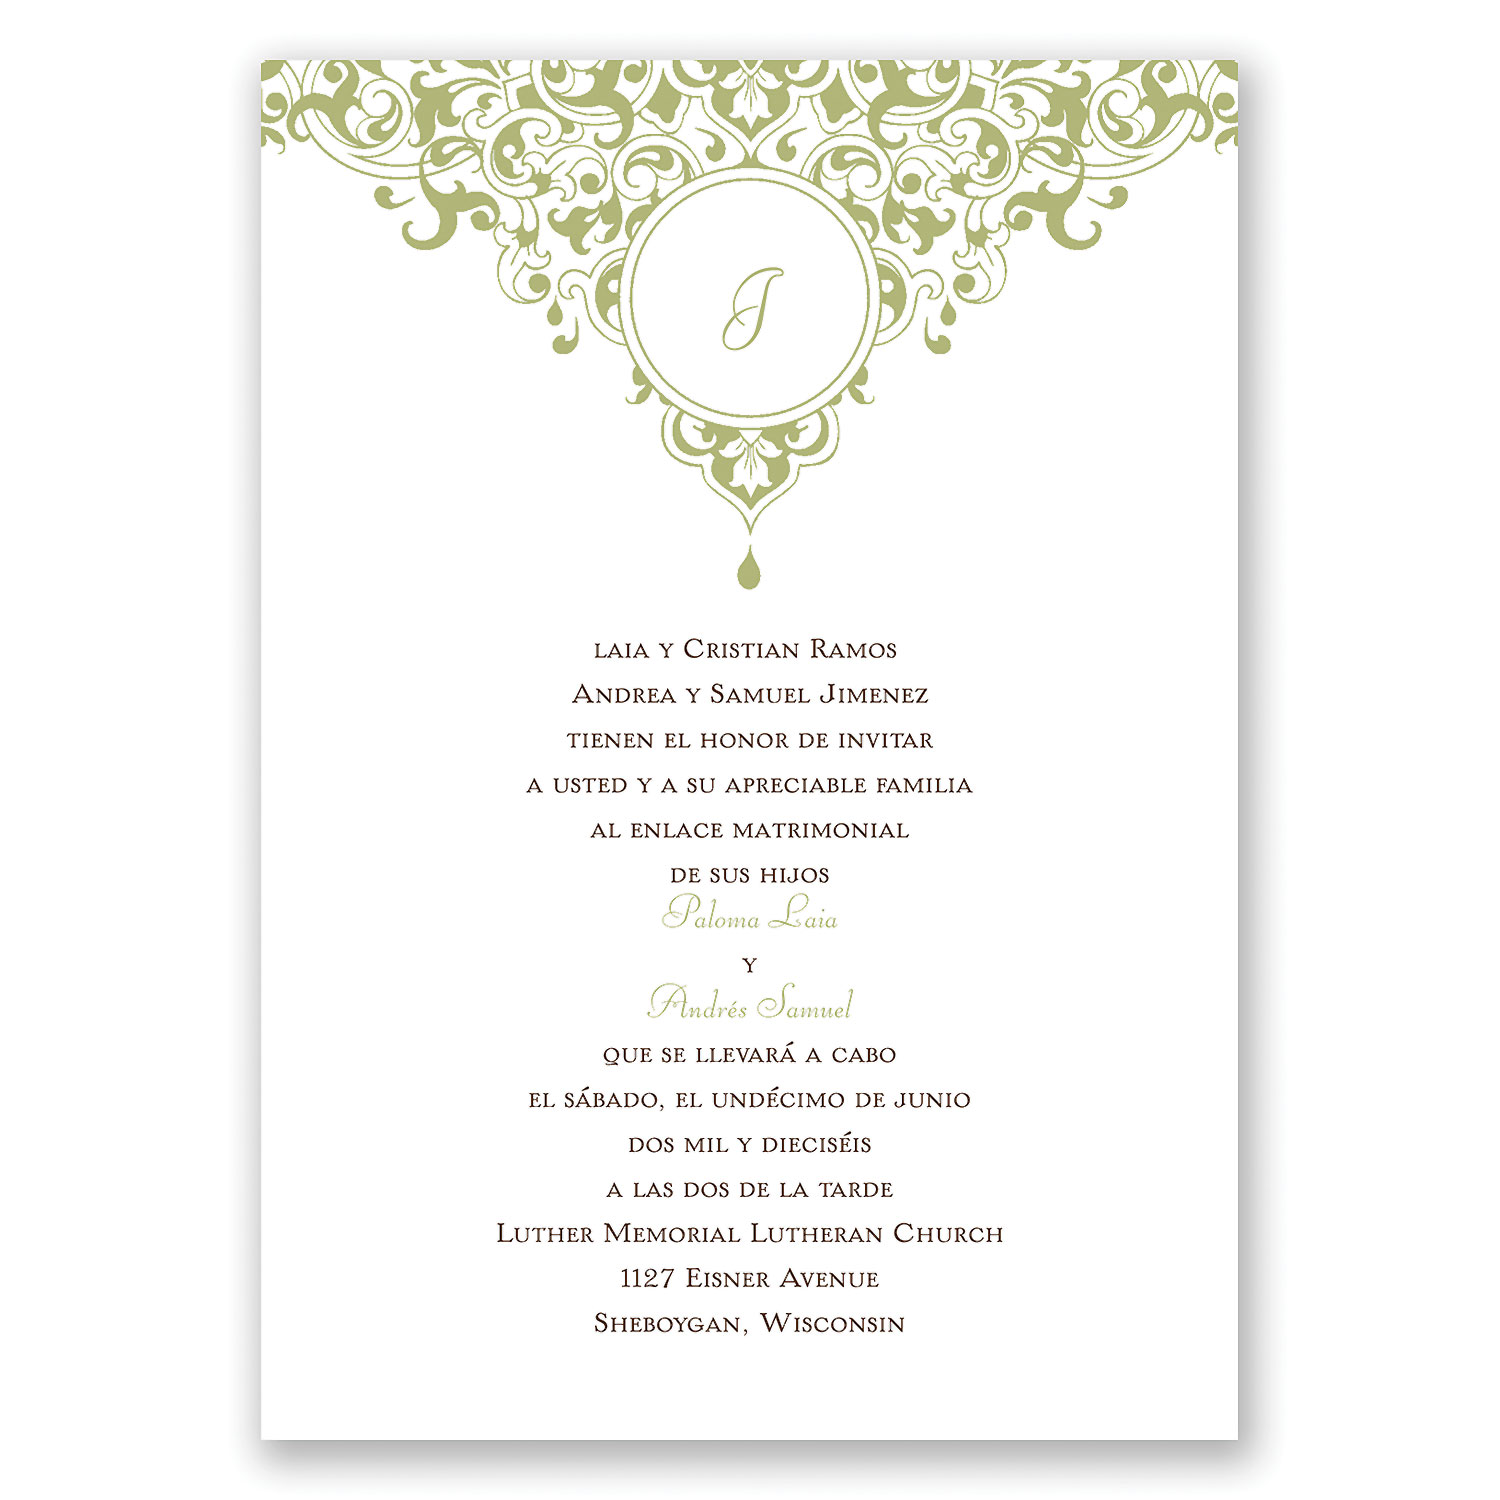 wedding invitation quotes in spanish - photo #23